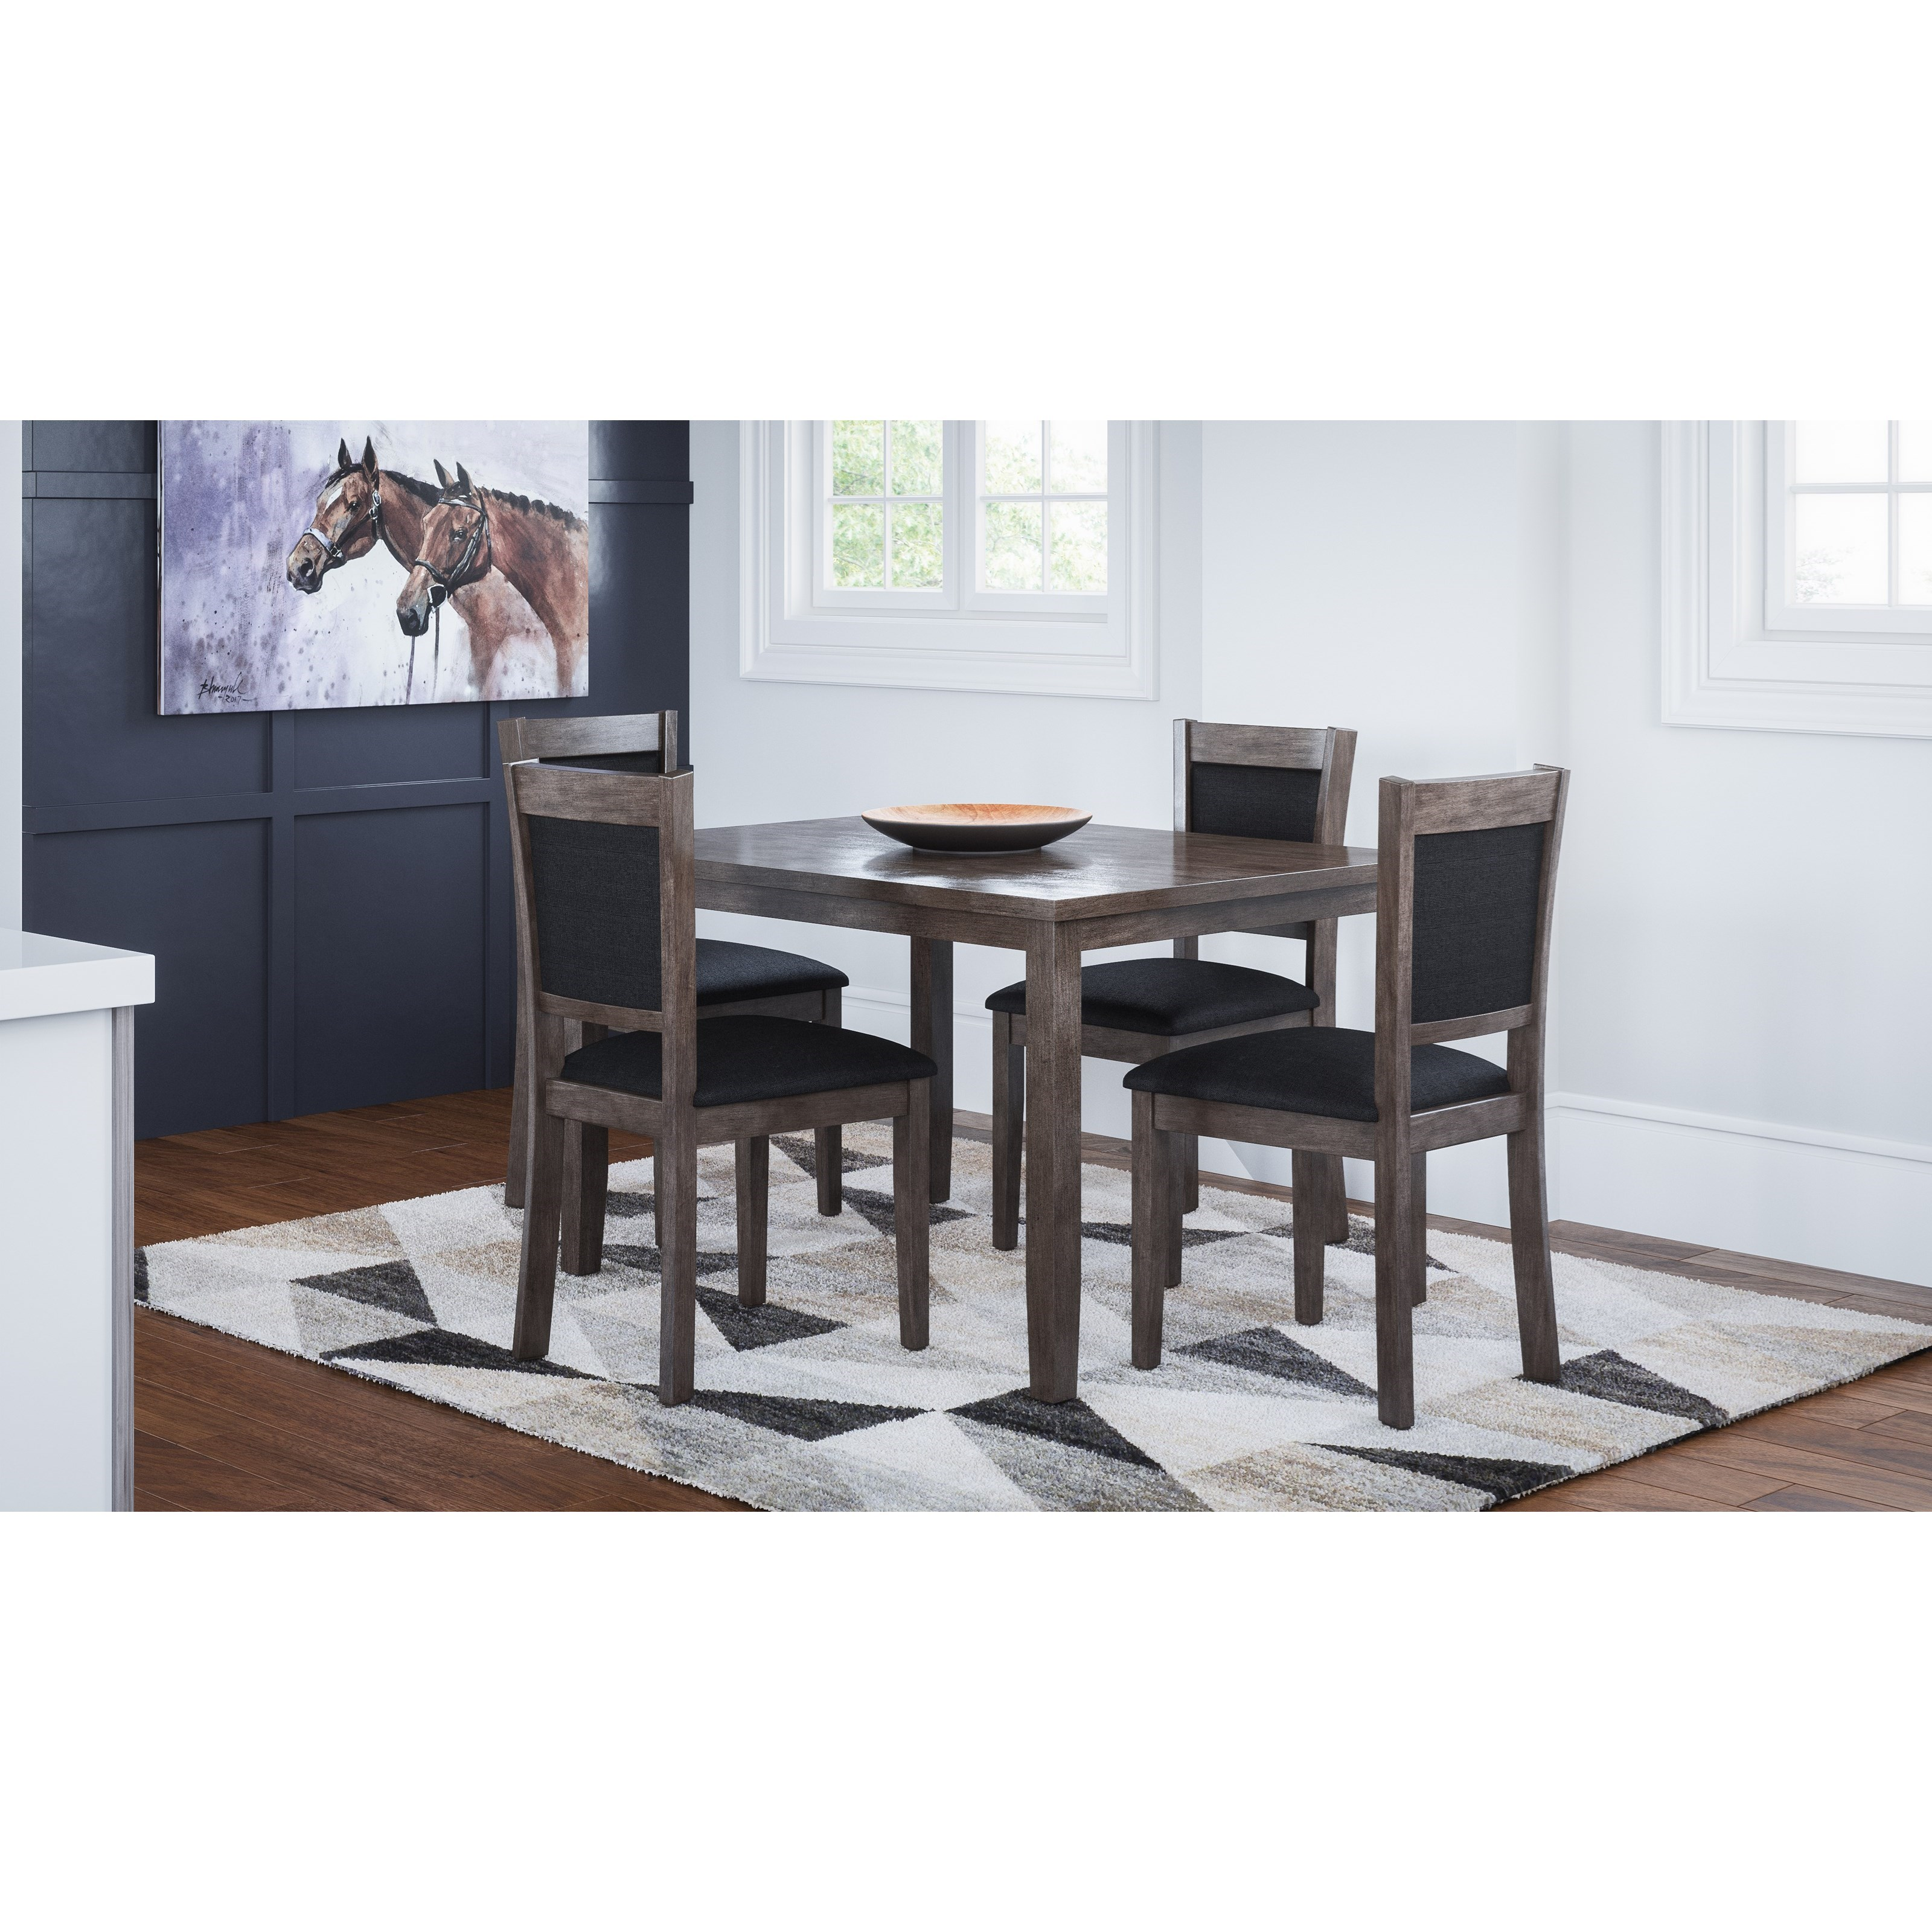 Braden Braden 5-Piece Dining Table Set by Jofran at Morris Home